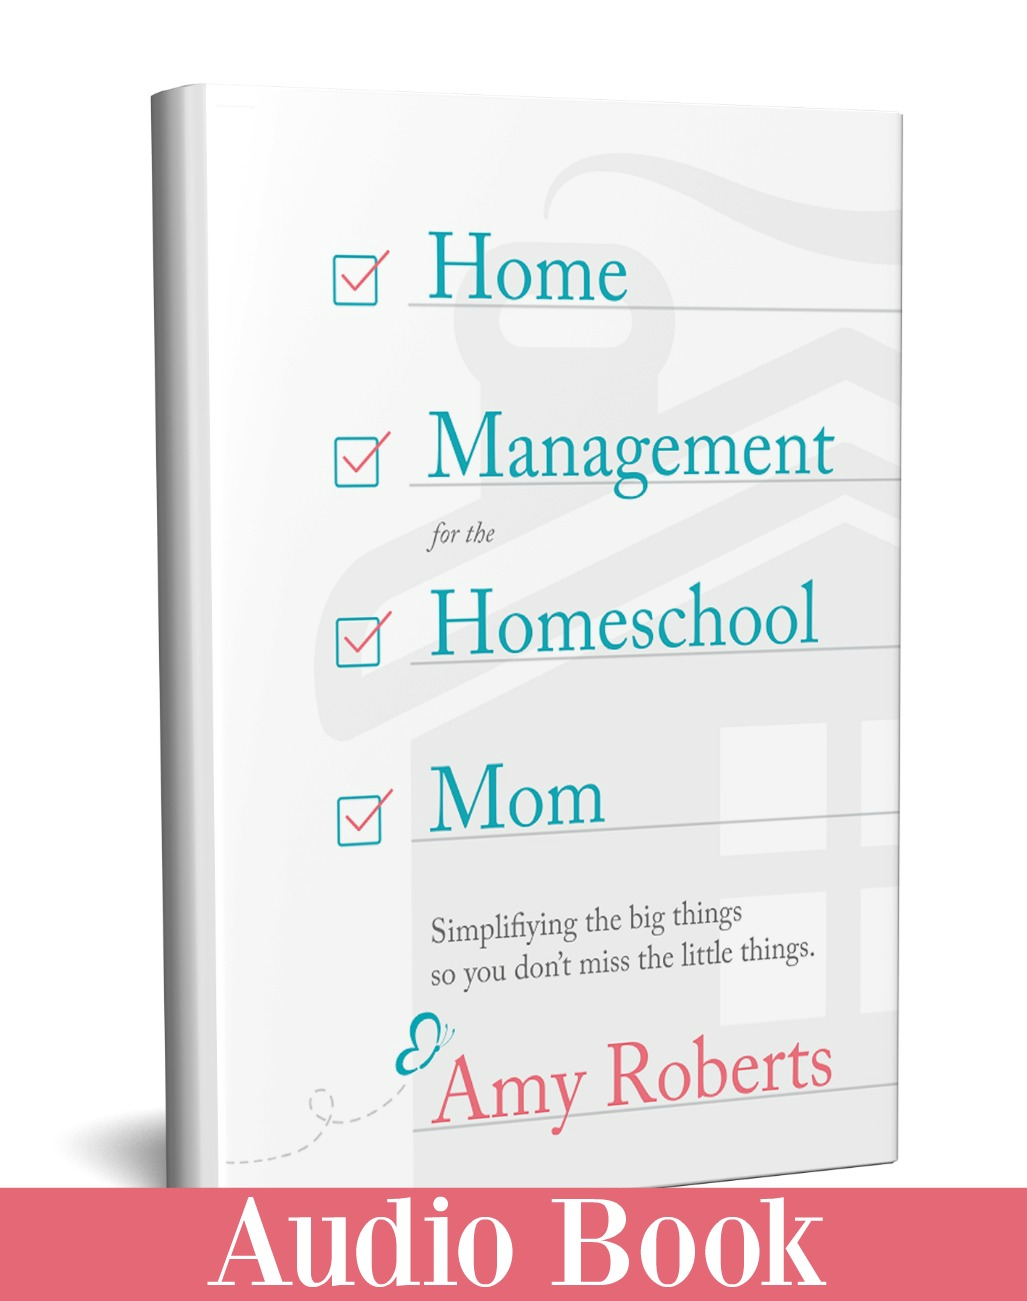 Home Management for the Homeschool Mom Audio